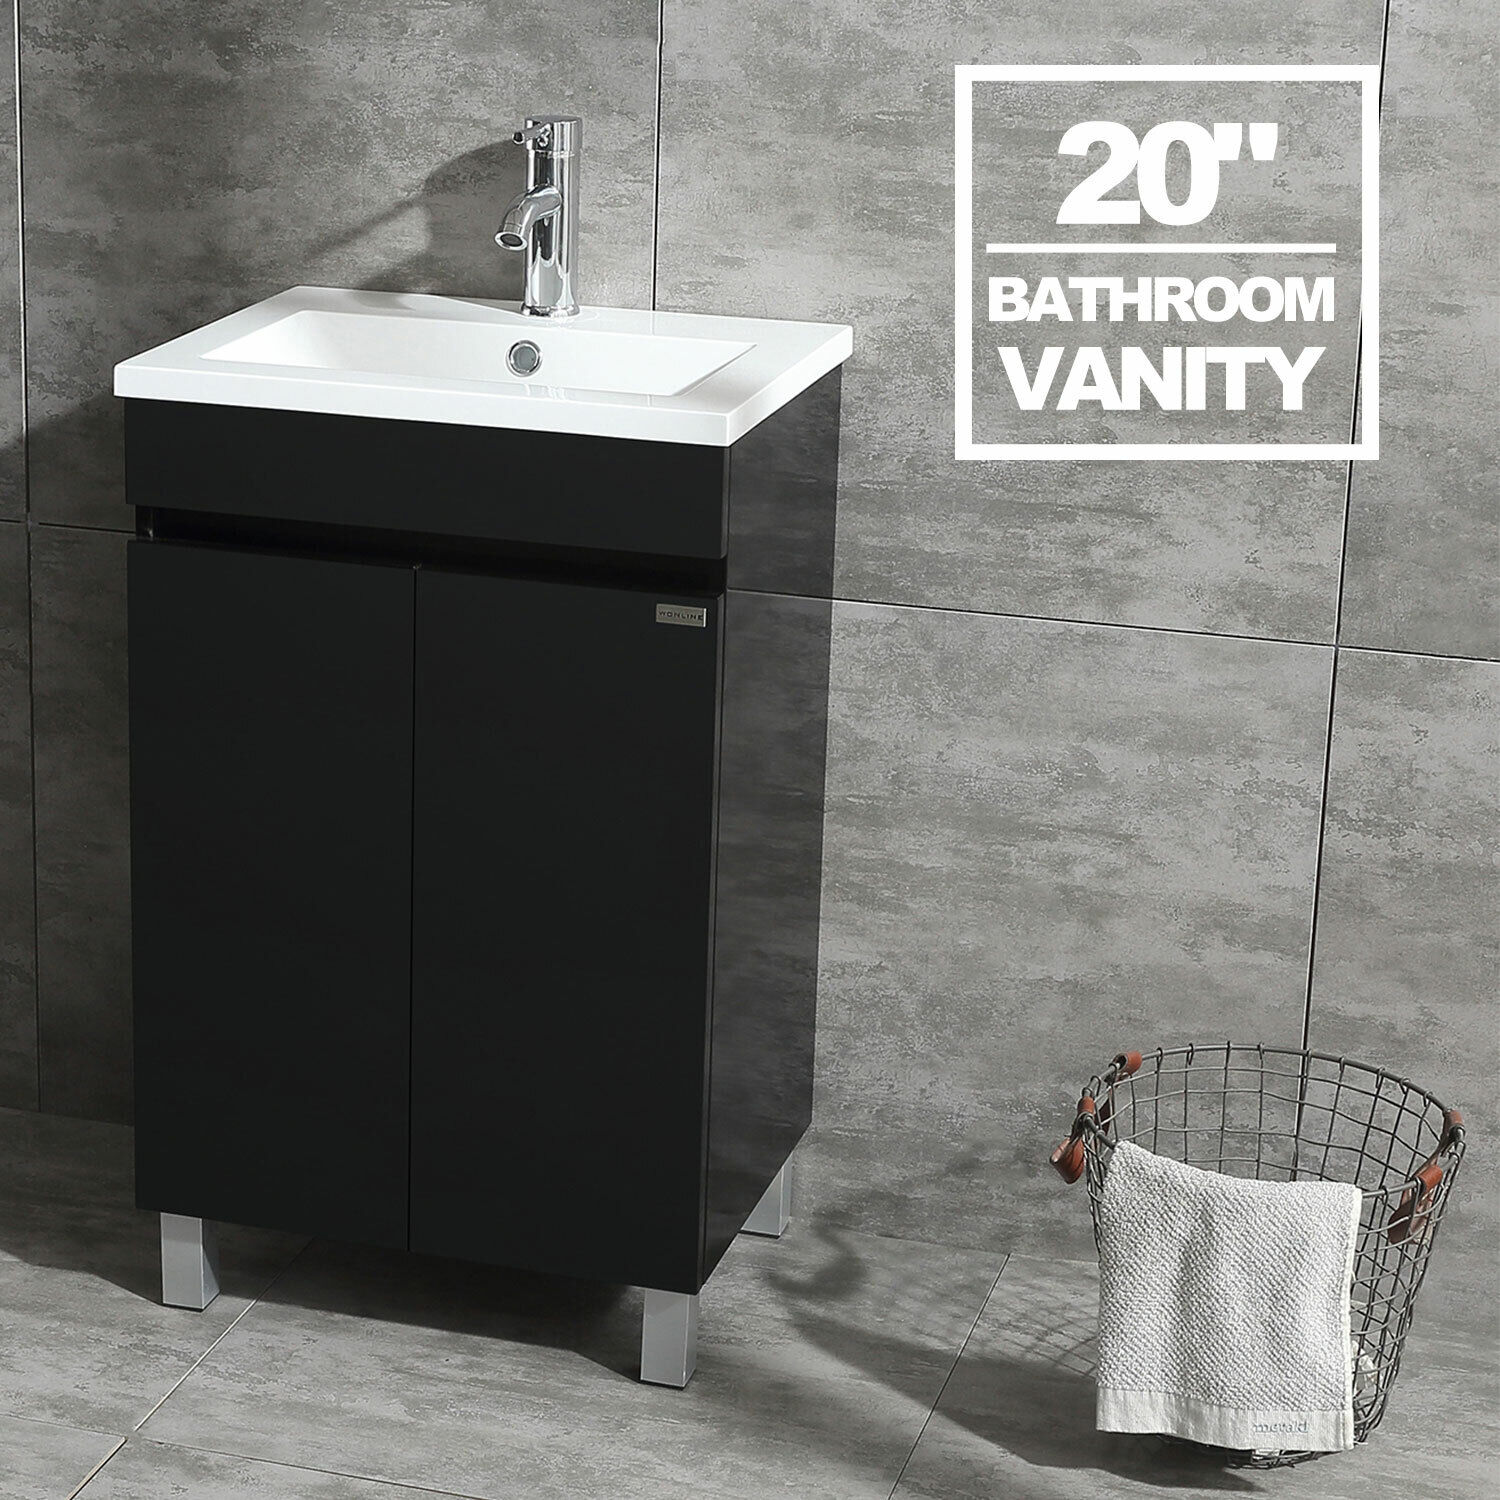 20 Bathroom Vanity Cabinet Wood Set W Undermount Resin Vessel